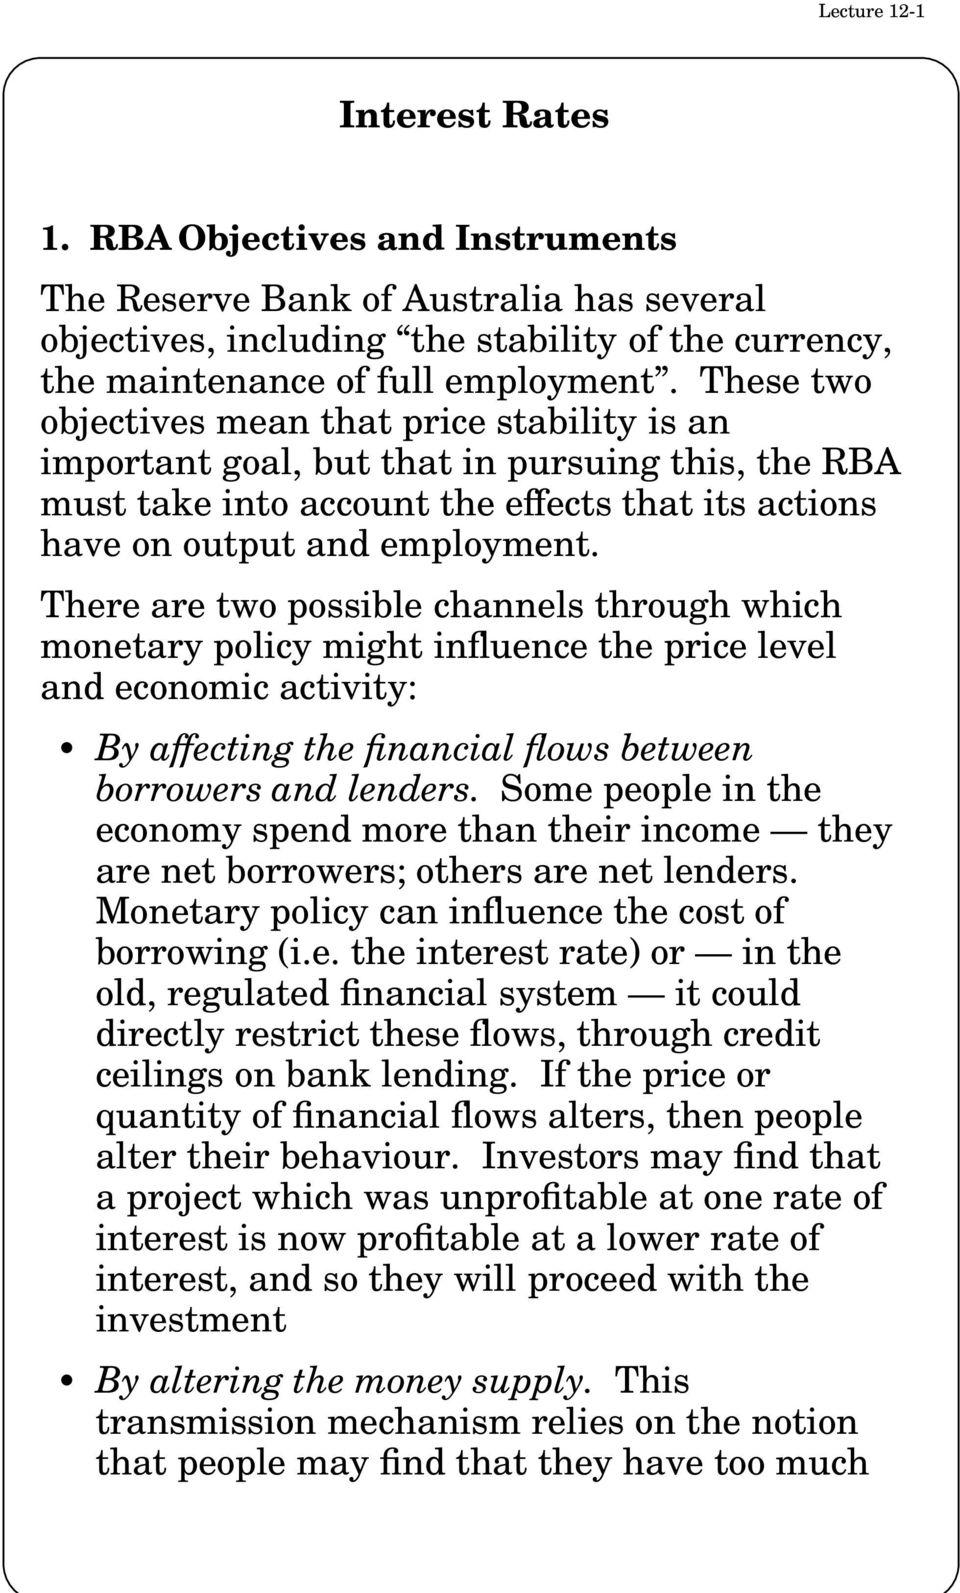 There are two possible channels through which monetary policy might influence the price level and economic activity: By affecting the financial flows between borrowers and lenders.